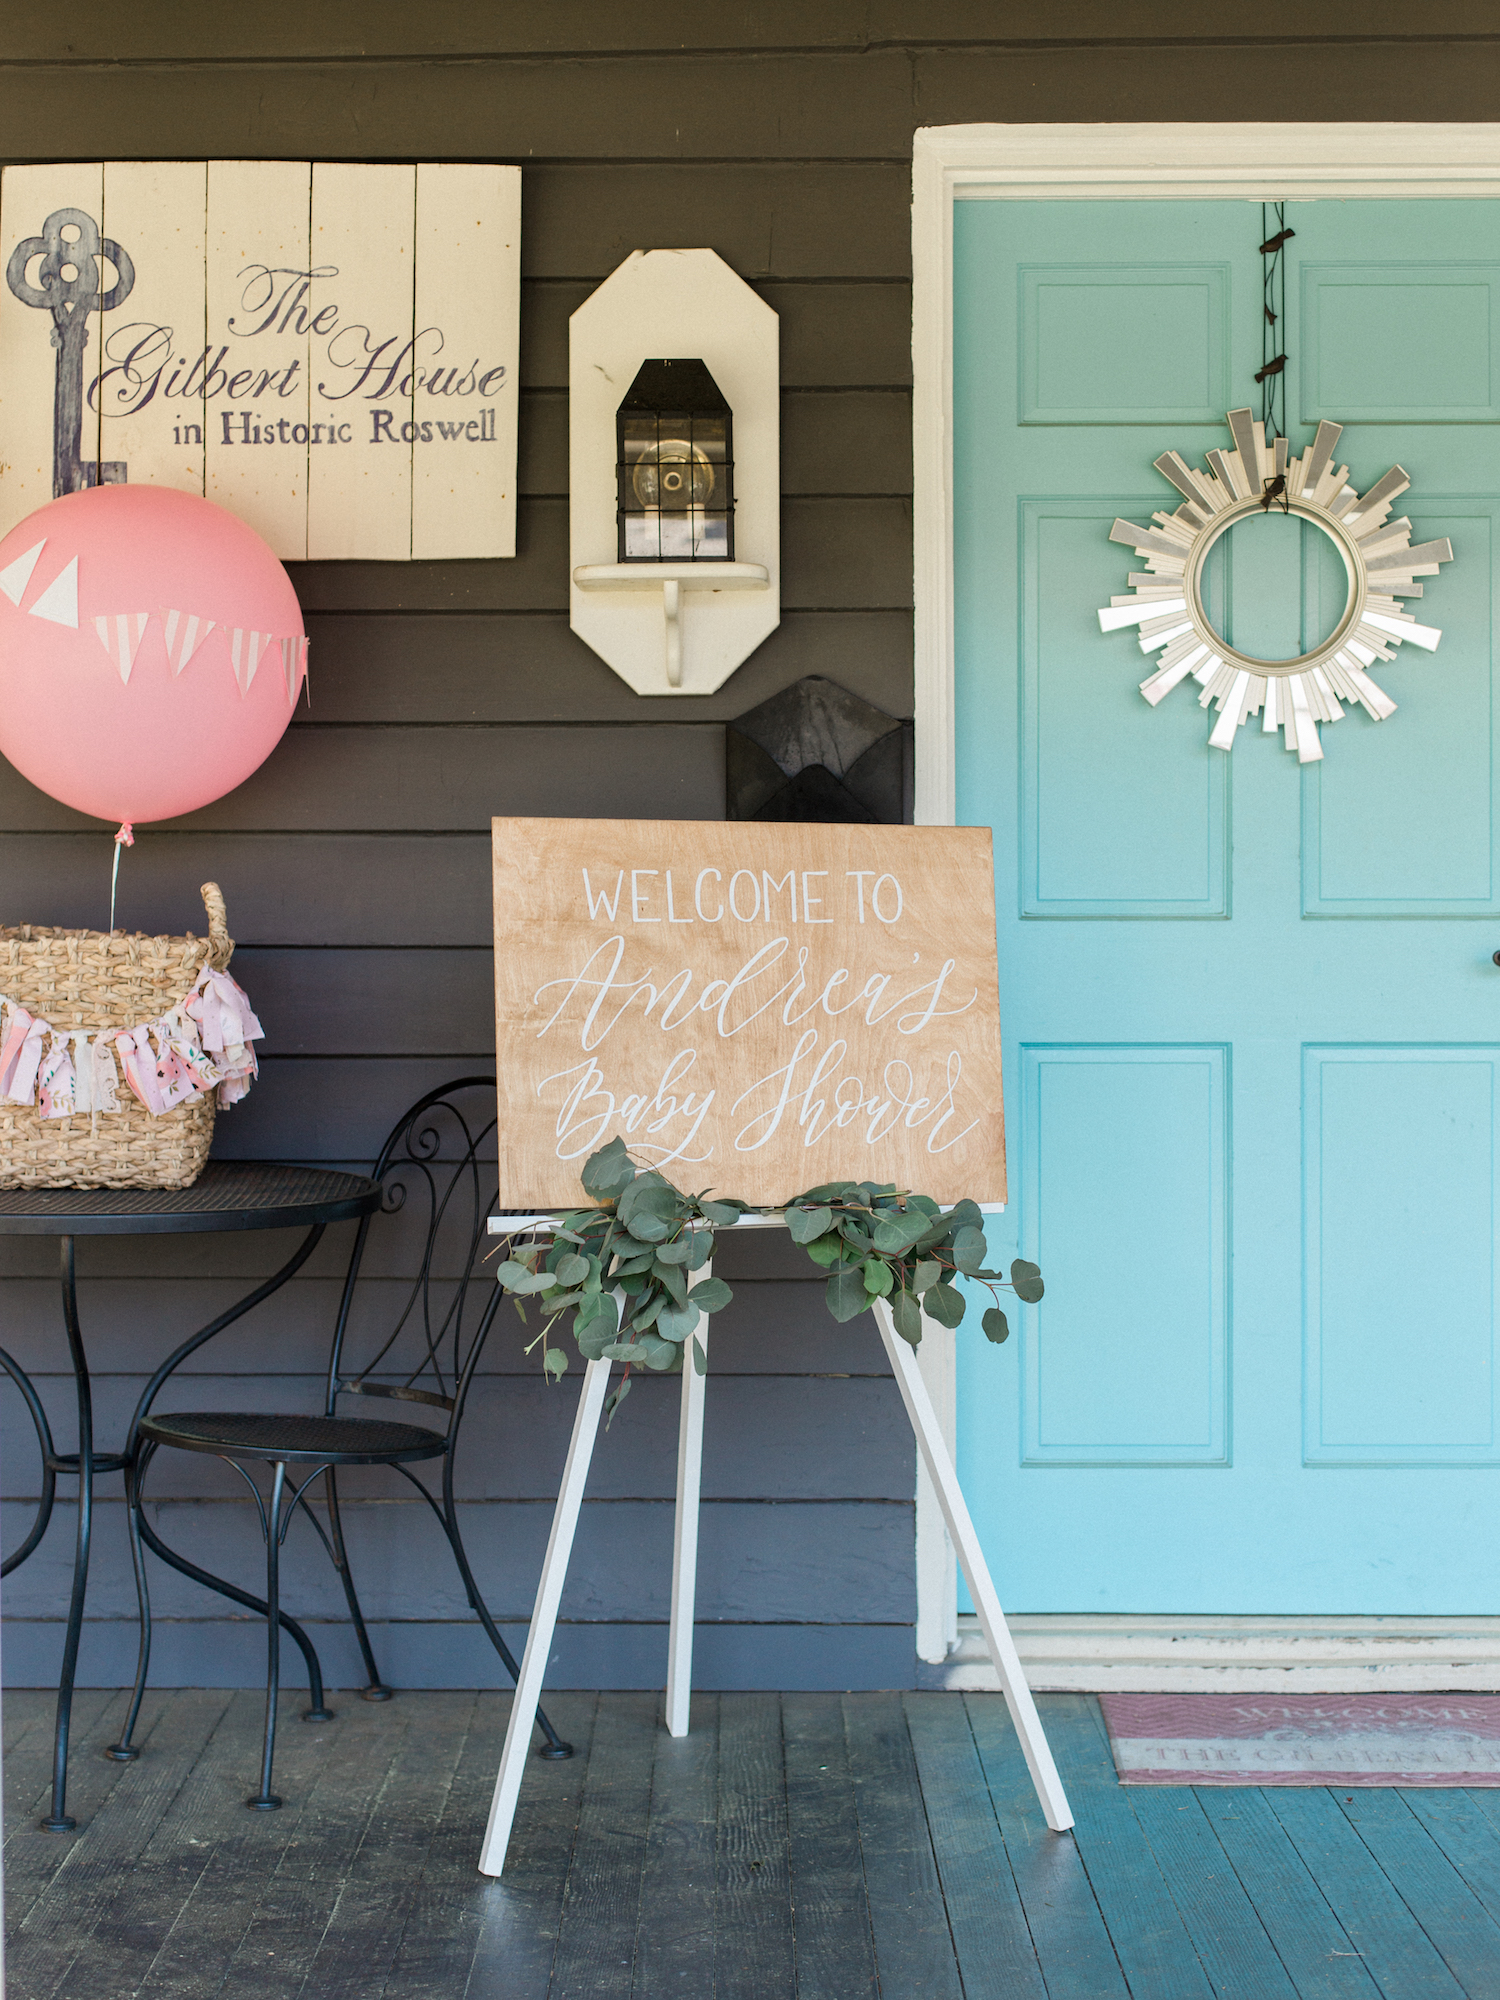 Travel themed spring baby shower at The Gilbert House in Roswell, Georgia. Calligraphy wood sign by ElisaAnne Calligraphy. Photography by Kesia Marie Photography Atlanta Fine Art Event Photographer